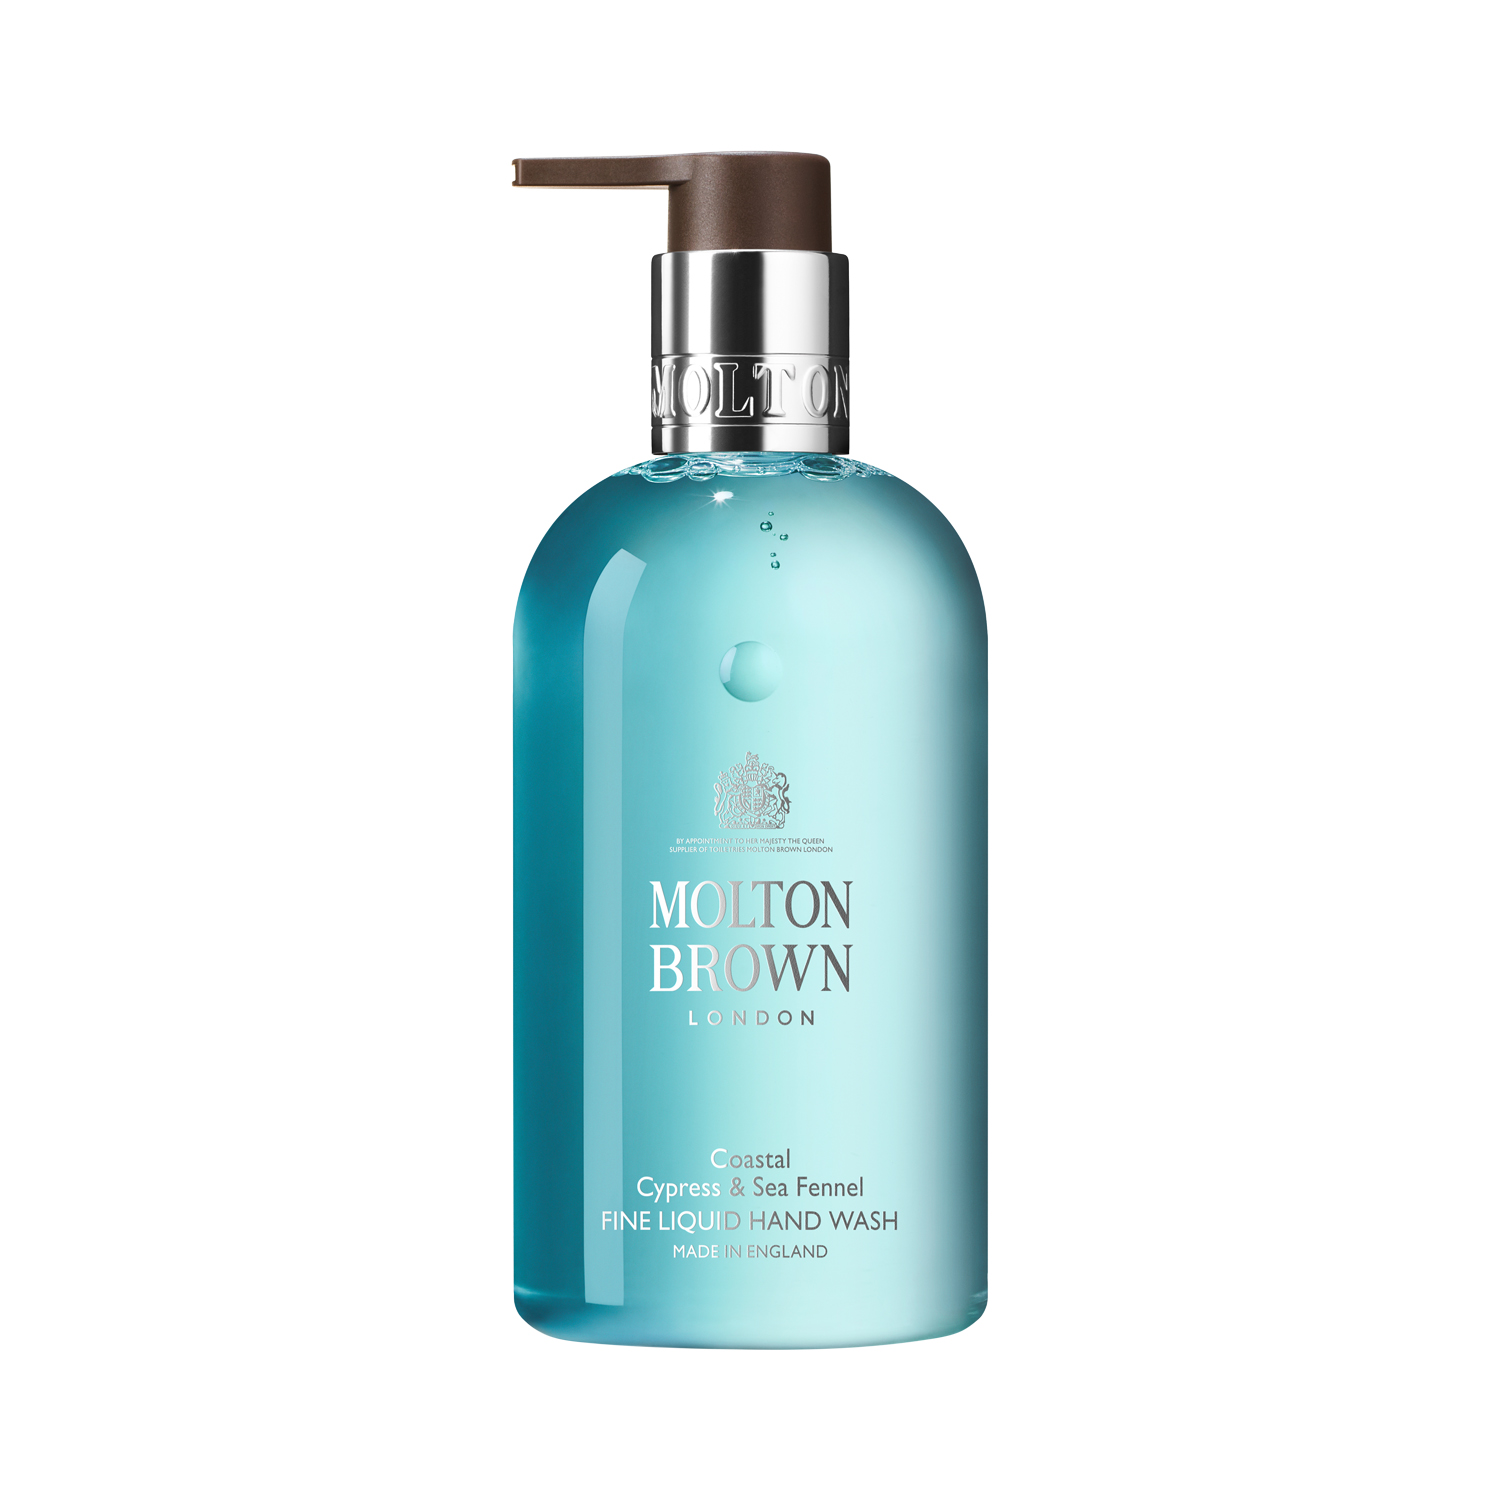 molton brown coastal cypress sea fennel fine liquid hand wash handwaschgel. Black Bedroom Furniture Sets. Home Design Ideas